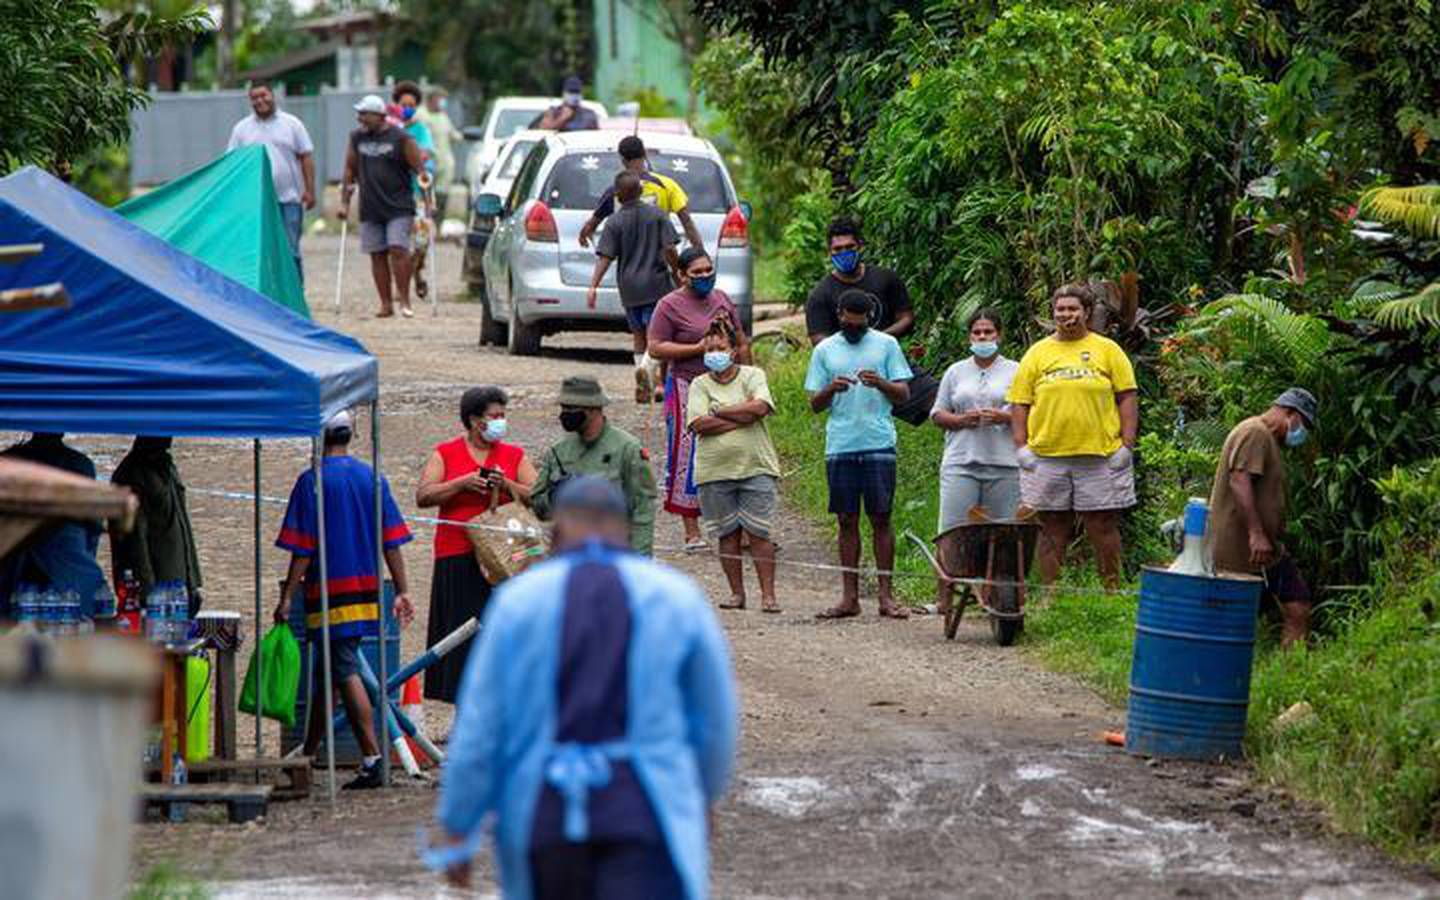 Villagers are questioned about their movements by Fijian military. Photo / Fijian Government via Facebook, File